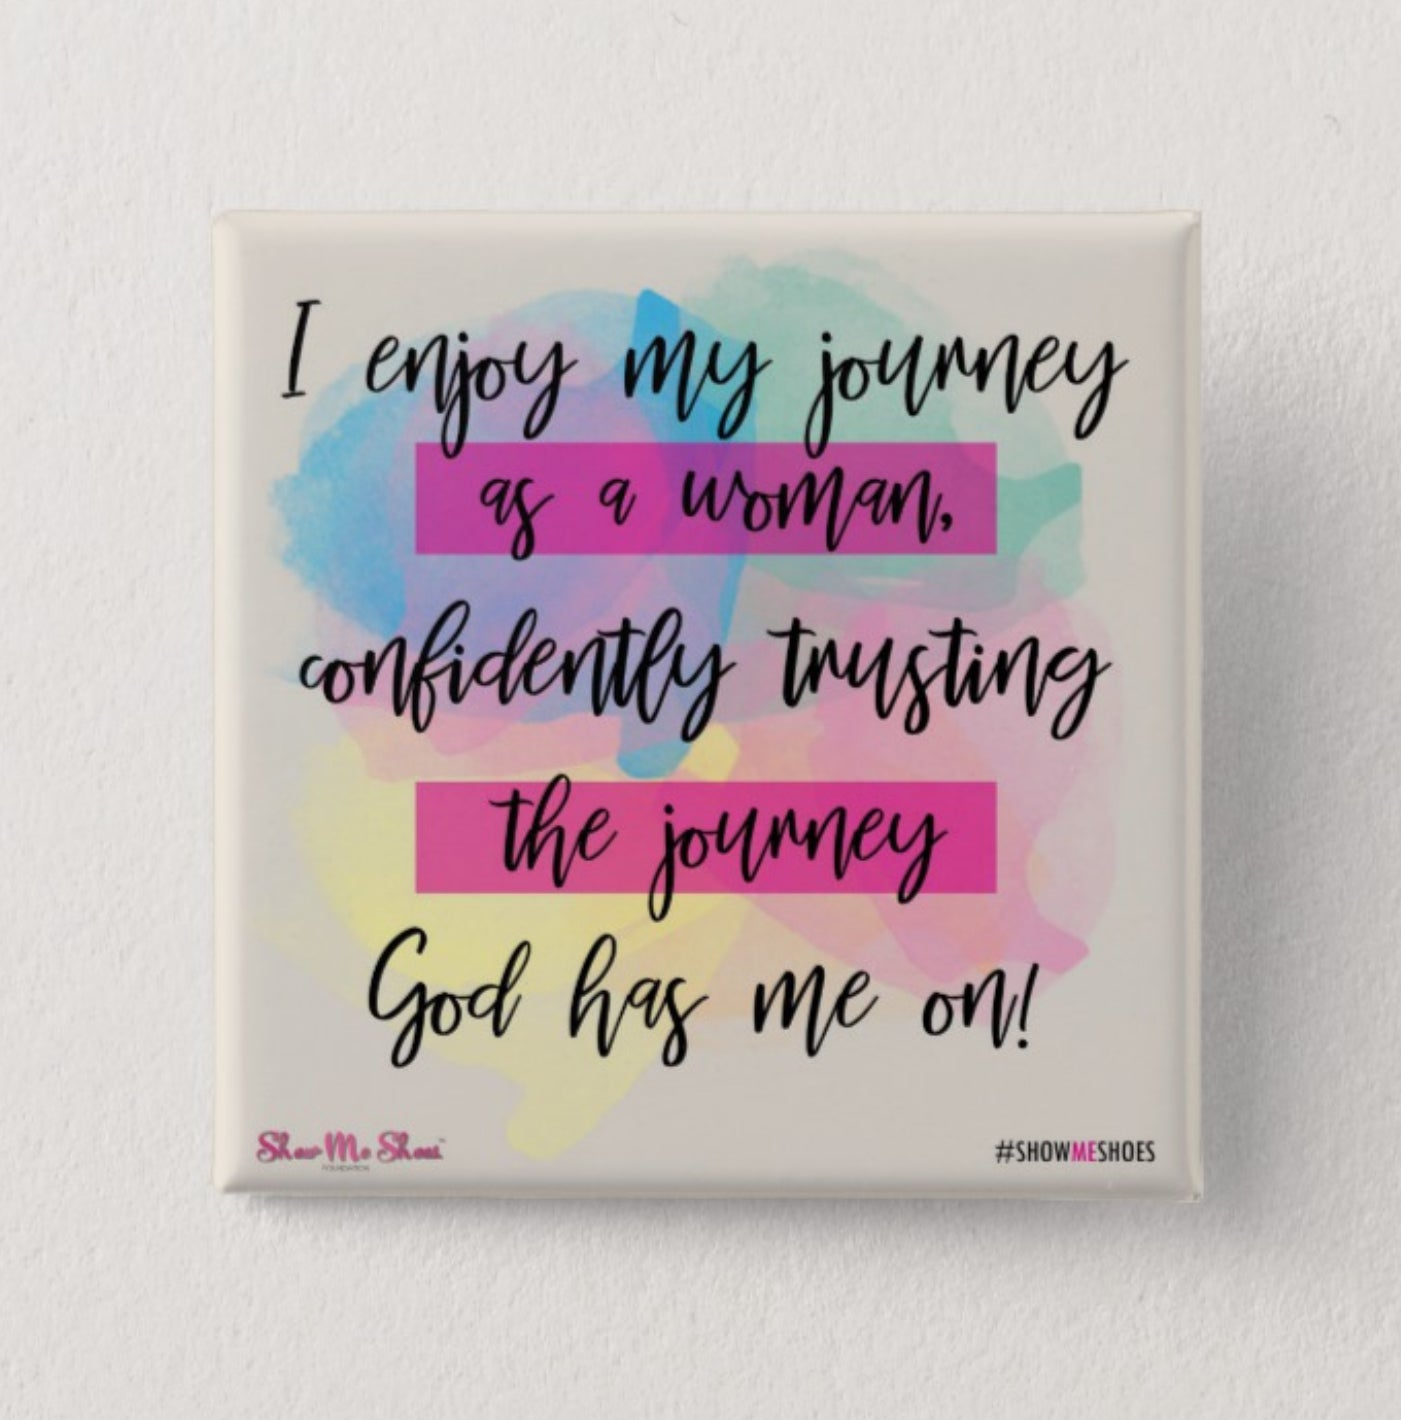 Affirmations from the Sole - I enjoy my journey as a woman!